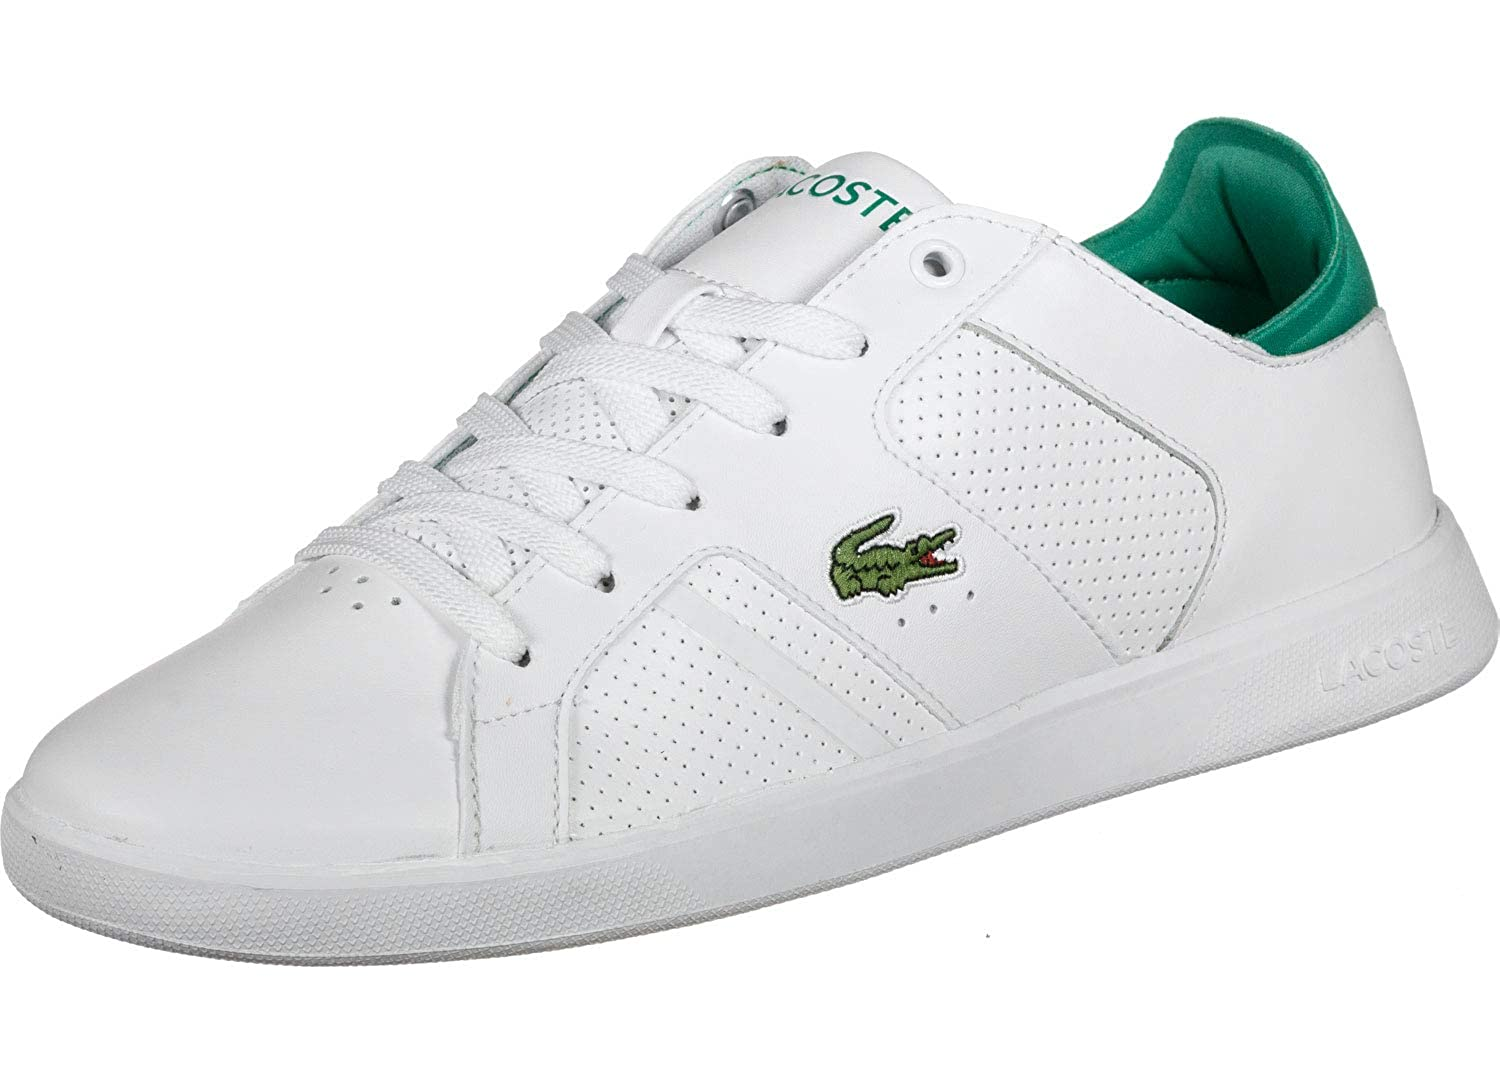 White Lacoste Novas Trainers White